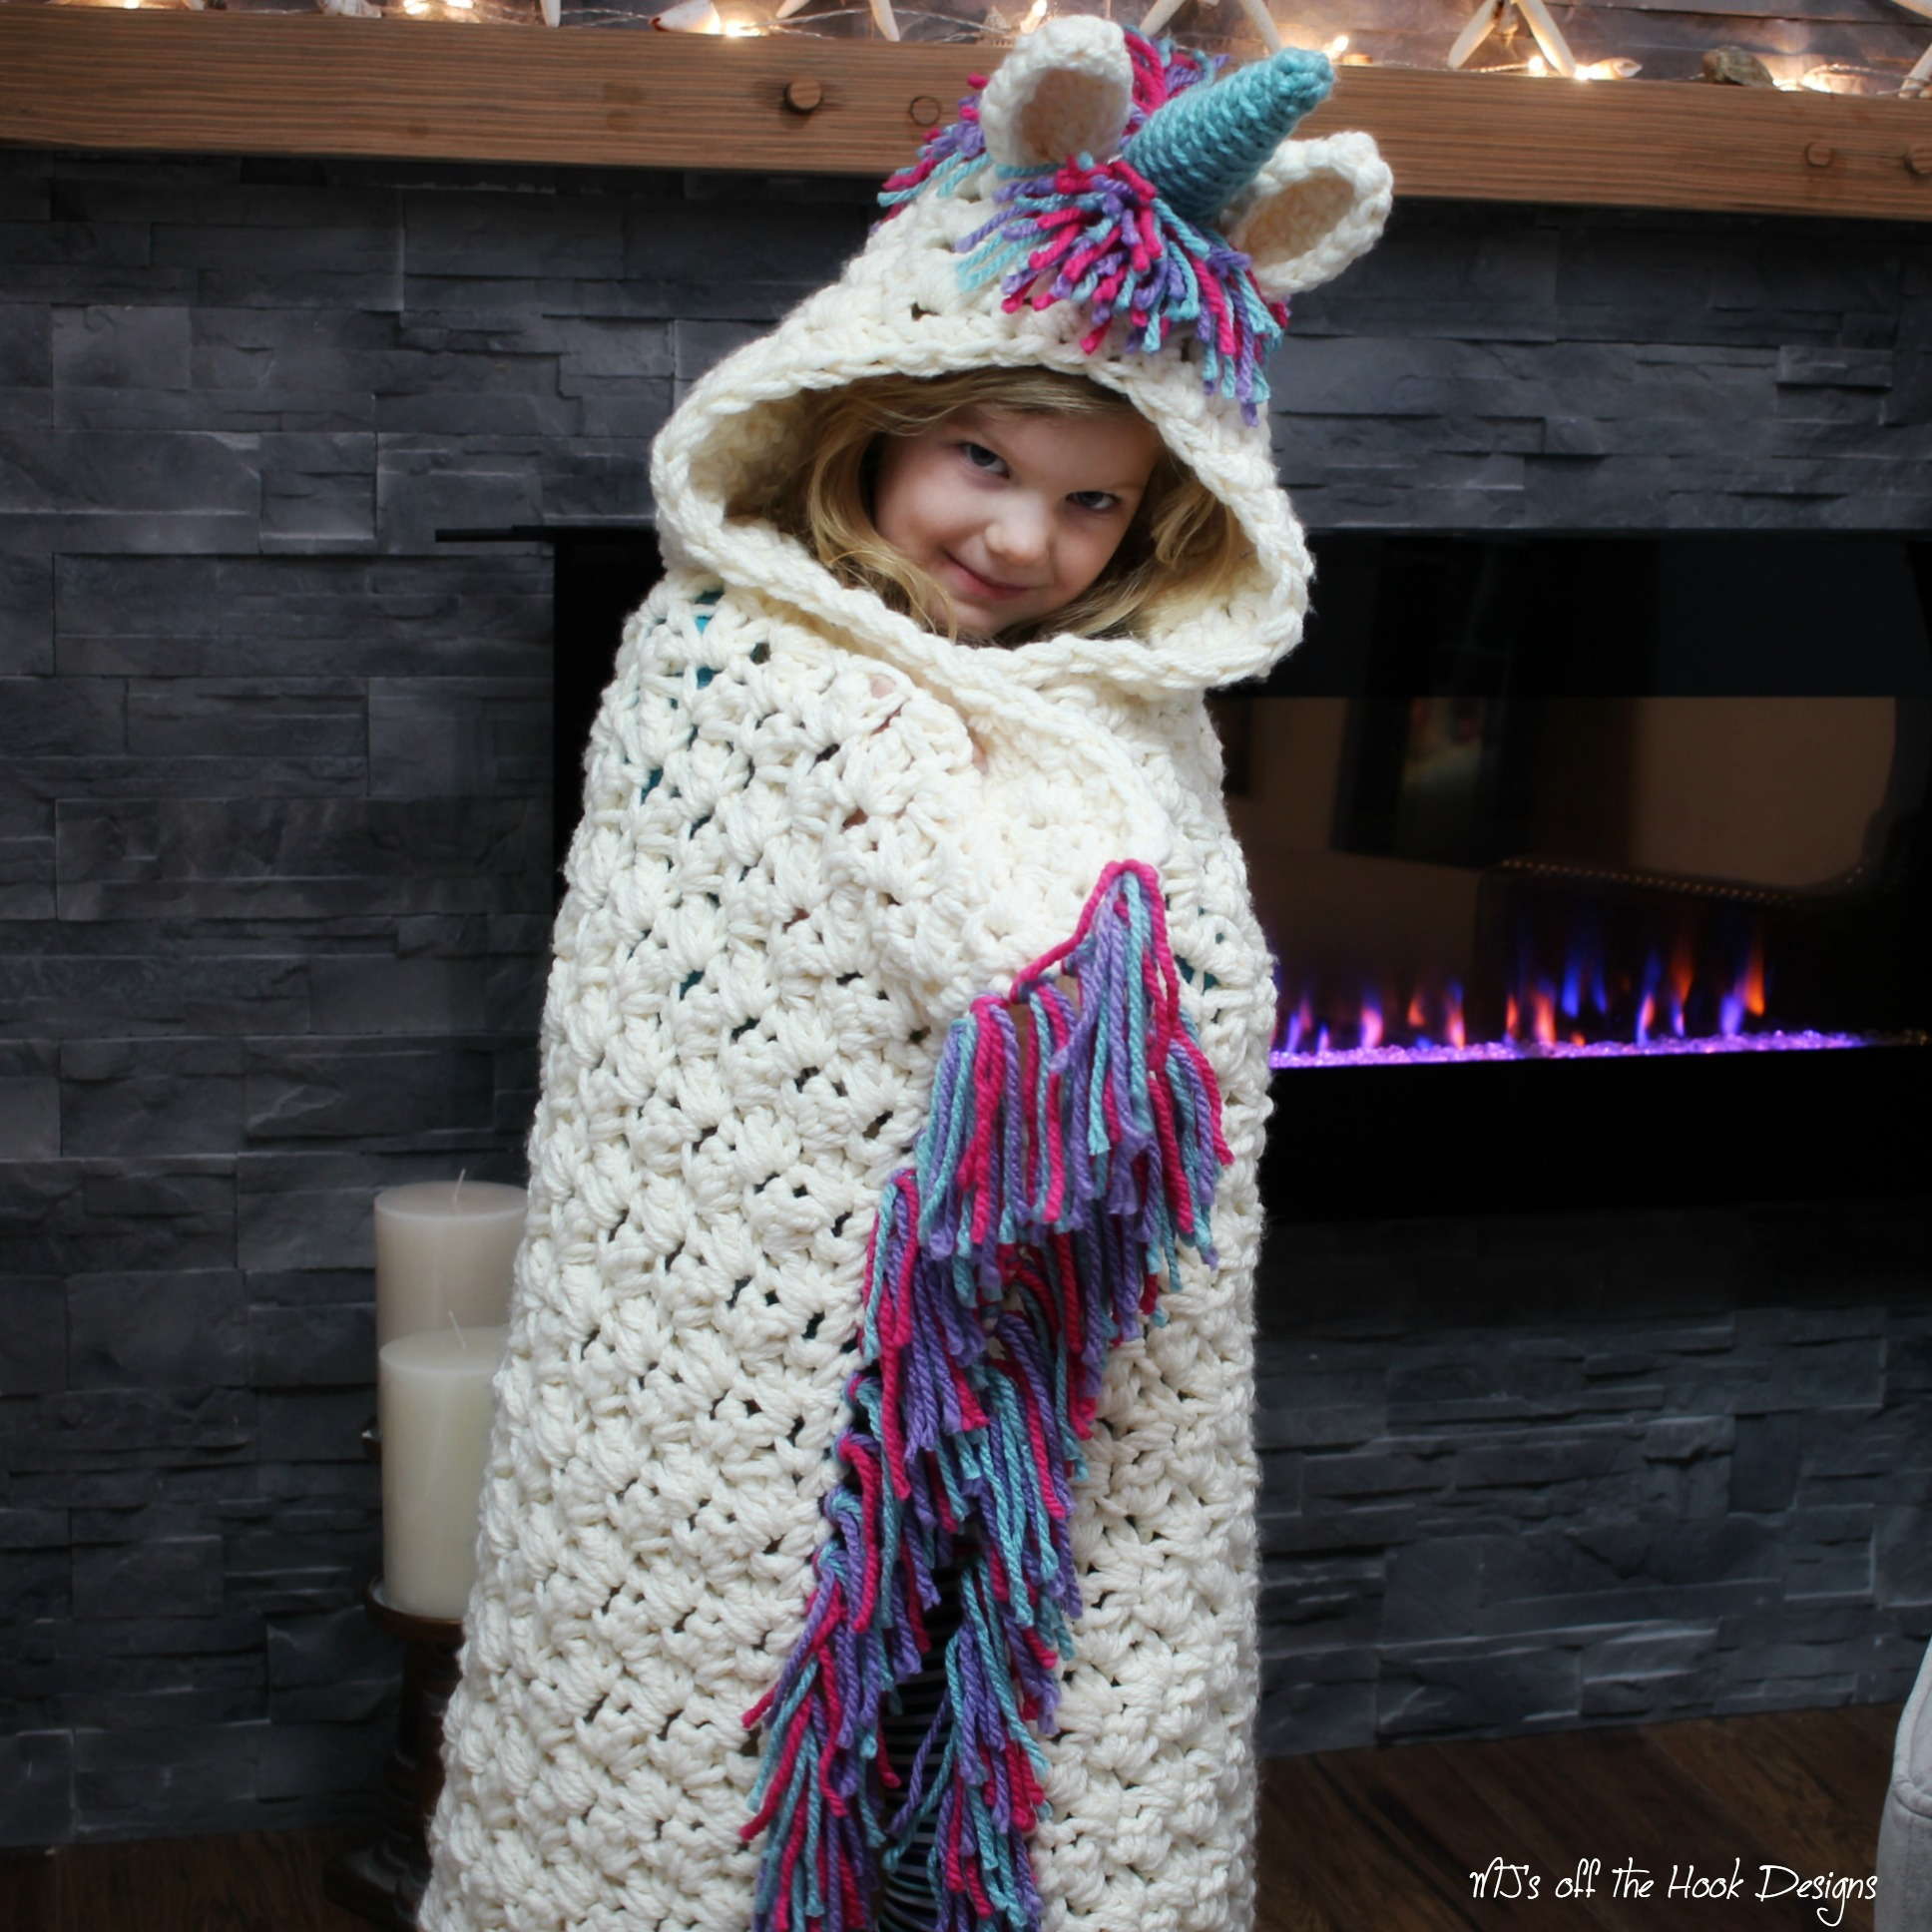 Crochet Baby Unicorn Pattern : Always Be a Unicorn! - MJs off the Hook Designs